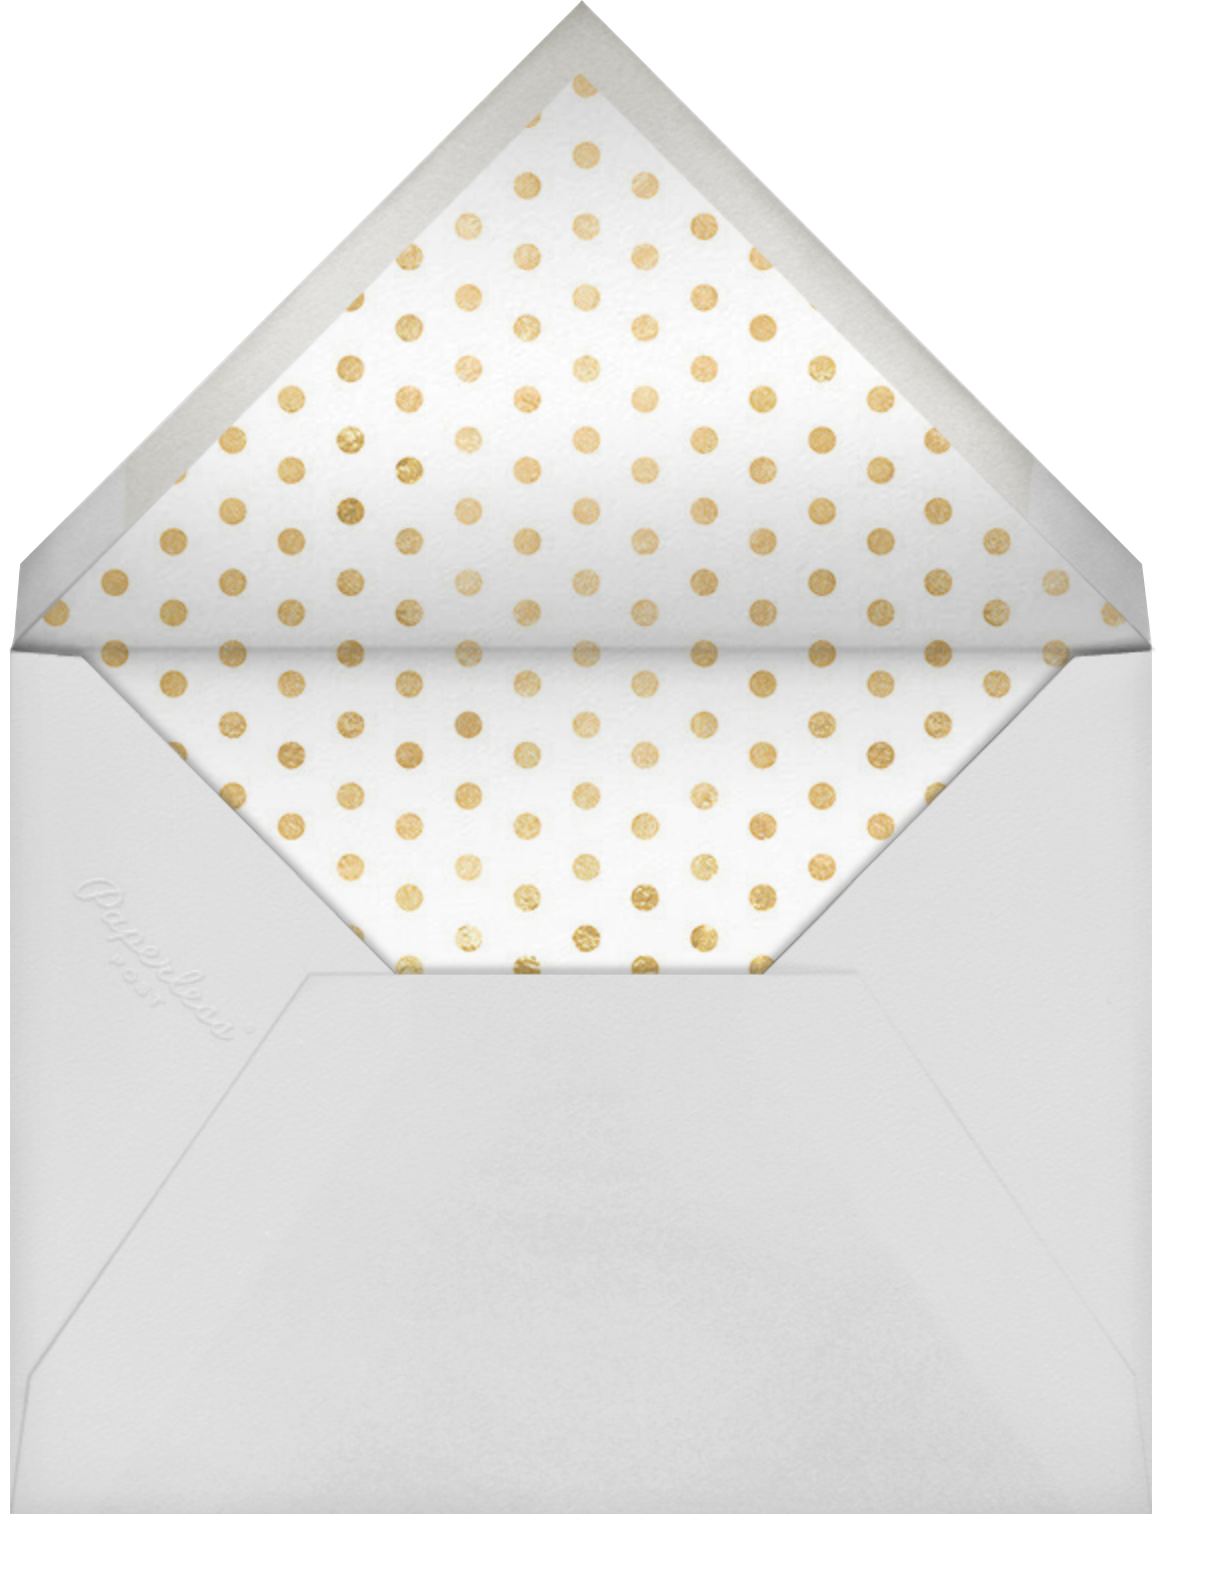 Buttercup Garland - Rifle Paper Co. - Bridal shower - envelope back